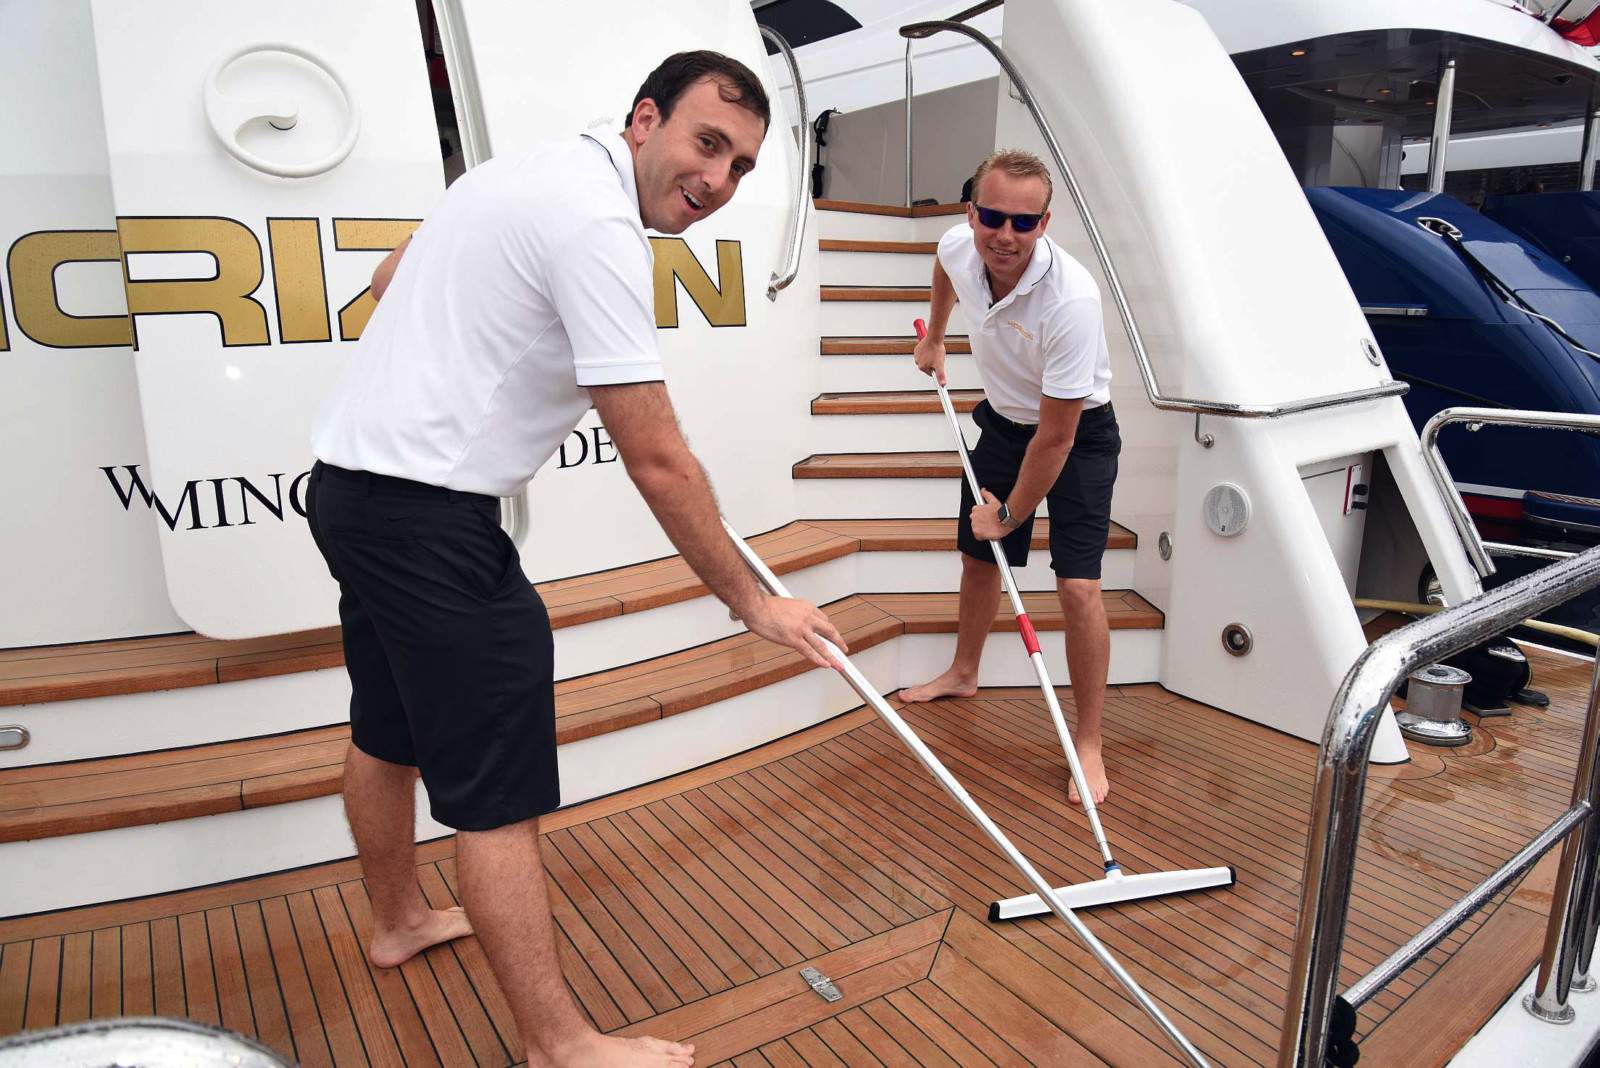 Crew work with a smile, rain or shine at Fort Lauderdale International Boat Show